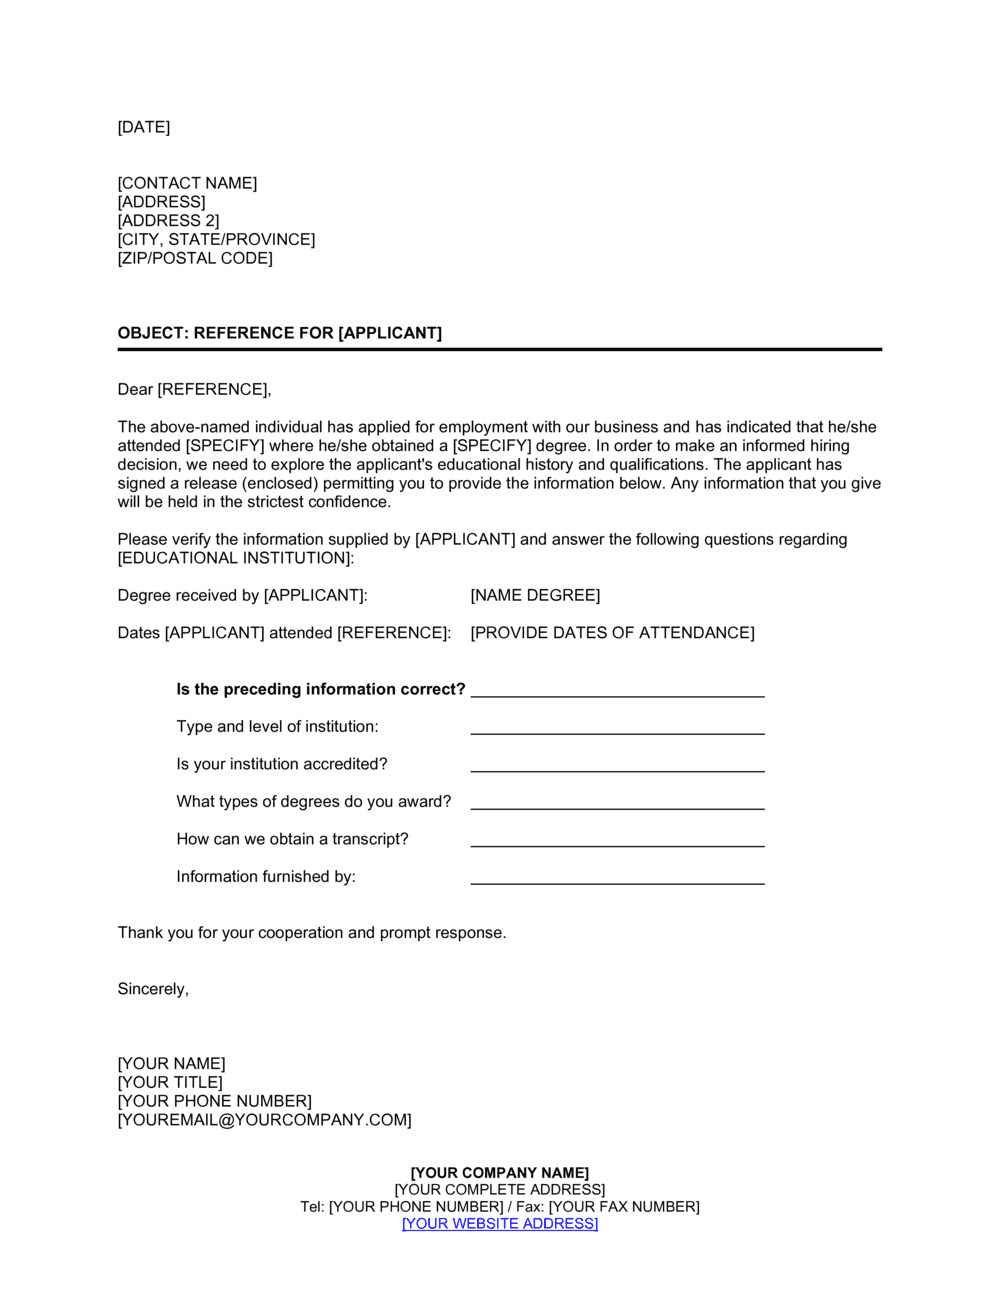 Business-in-a-Box's Educational Reference Check Letter Template